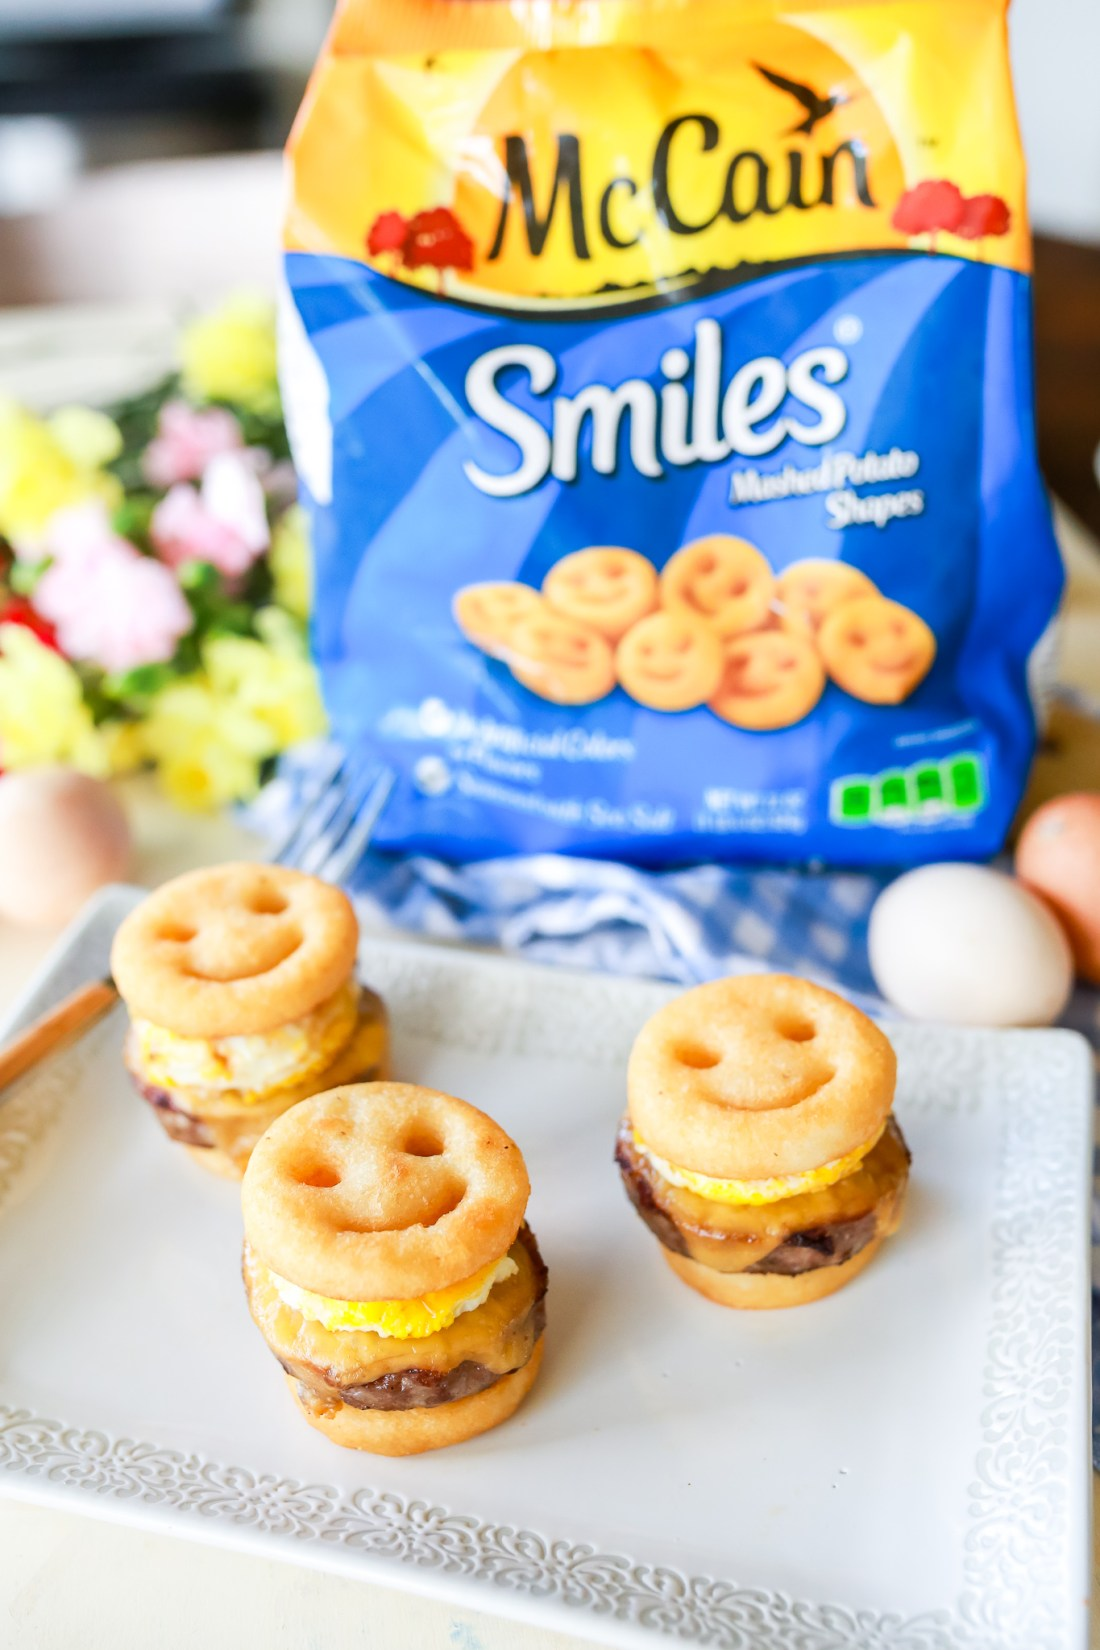 Quick, easy, & FUN family breakfast sliders! Sausage, egg, & cheese sandwiches reinvented into a simple but delicious sandwich the whole family can enjoy!